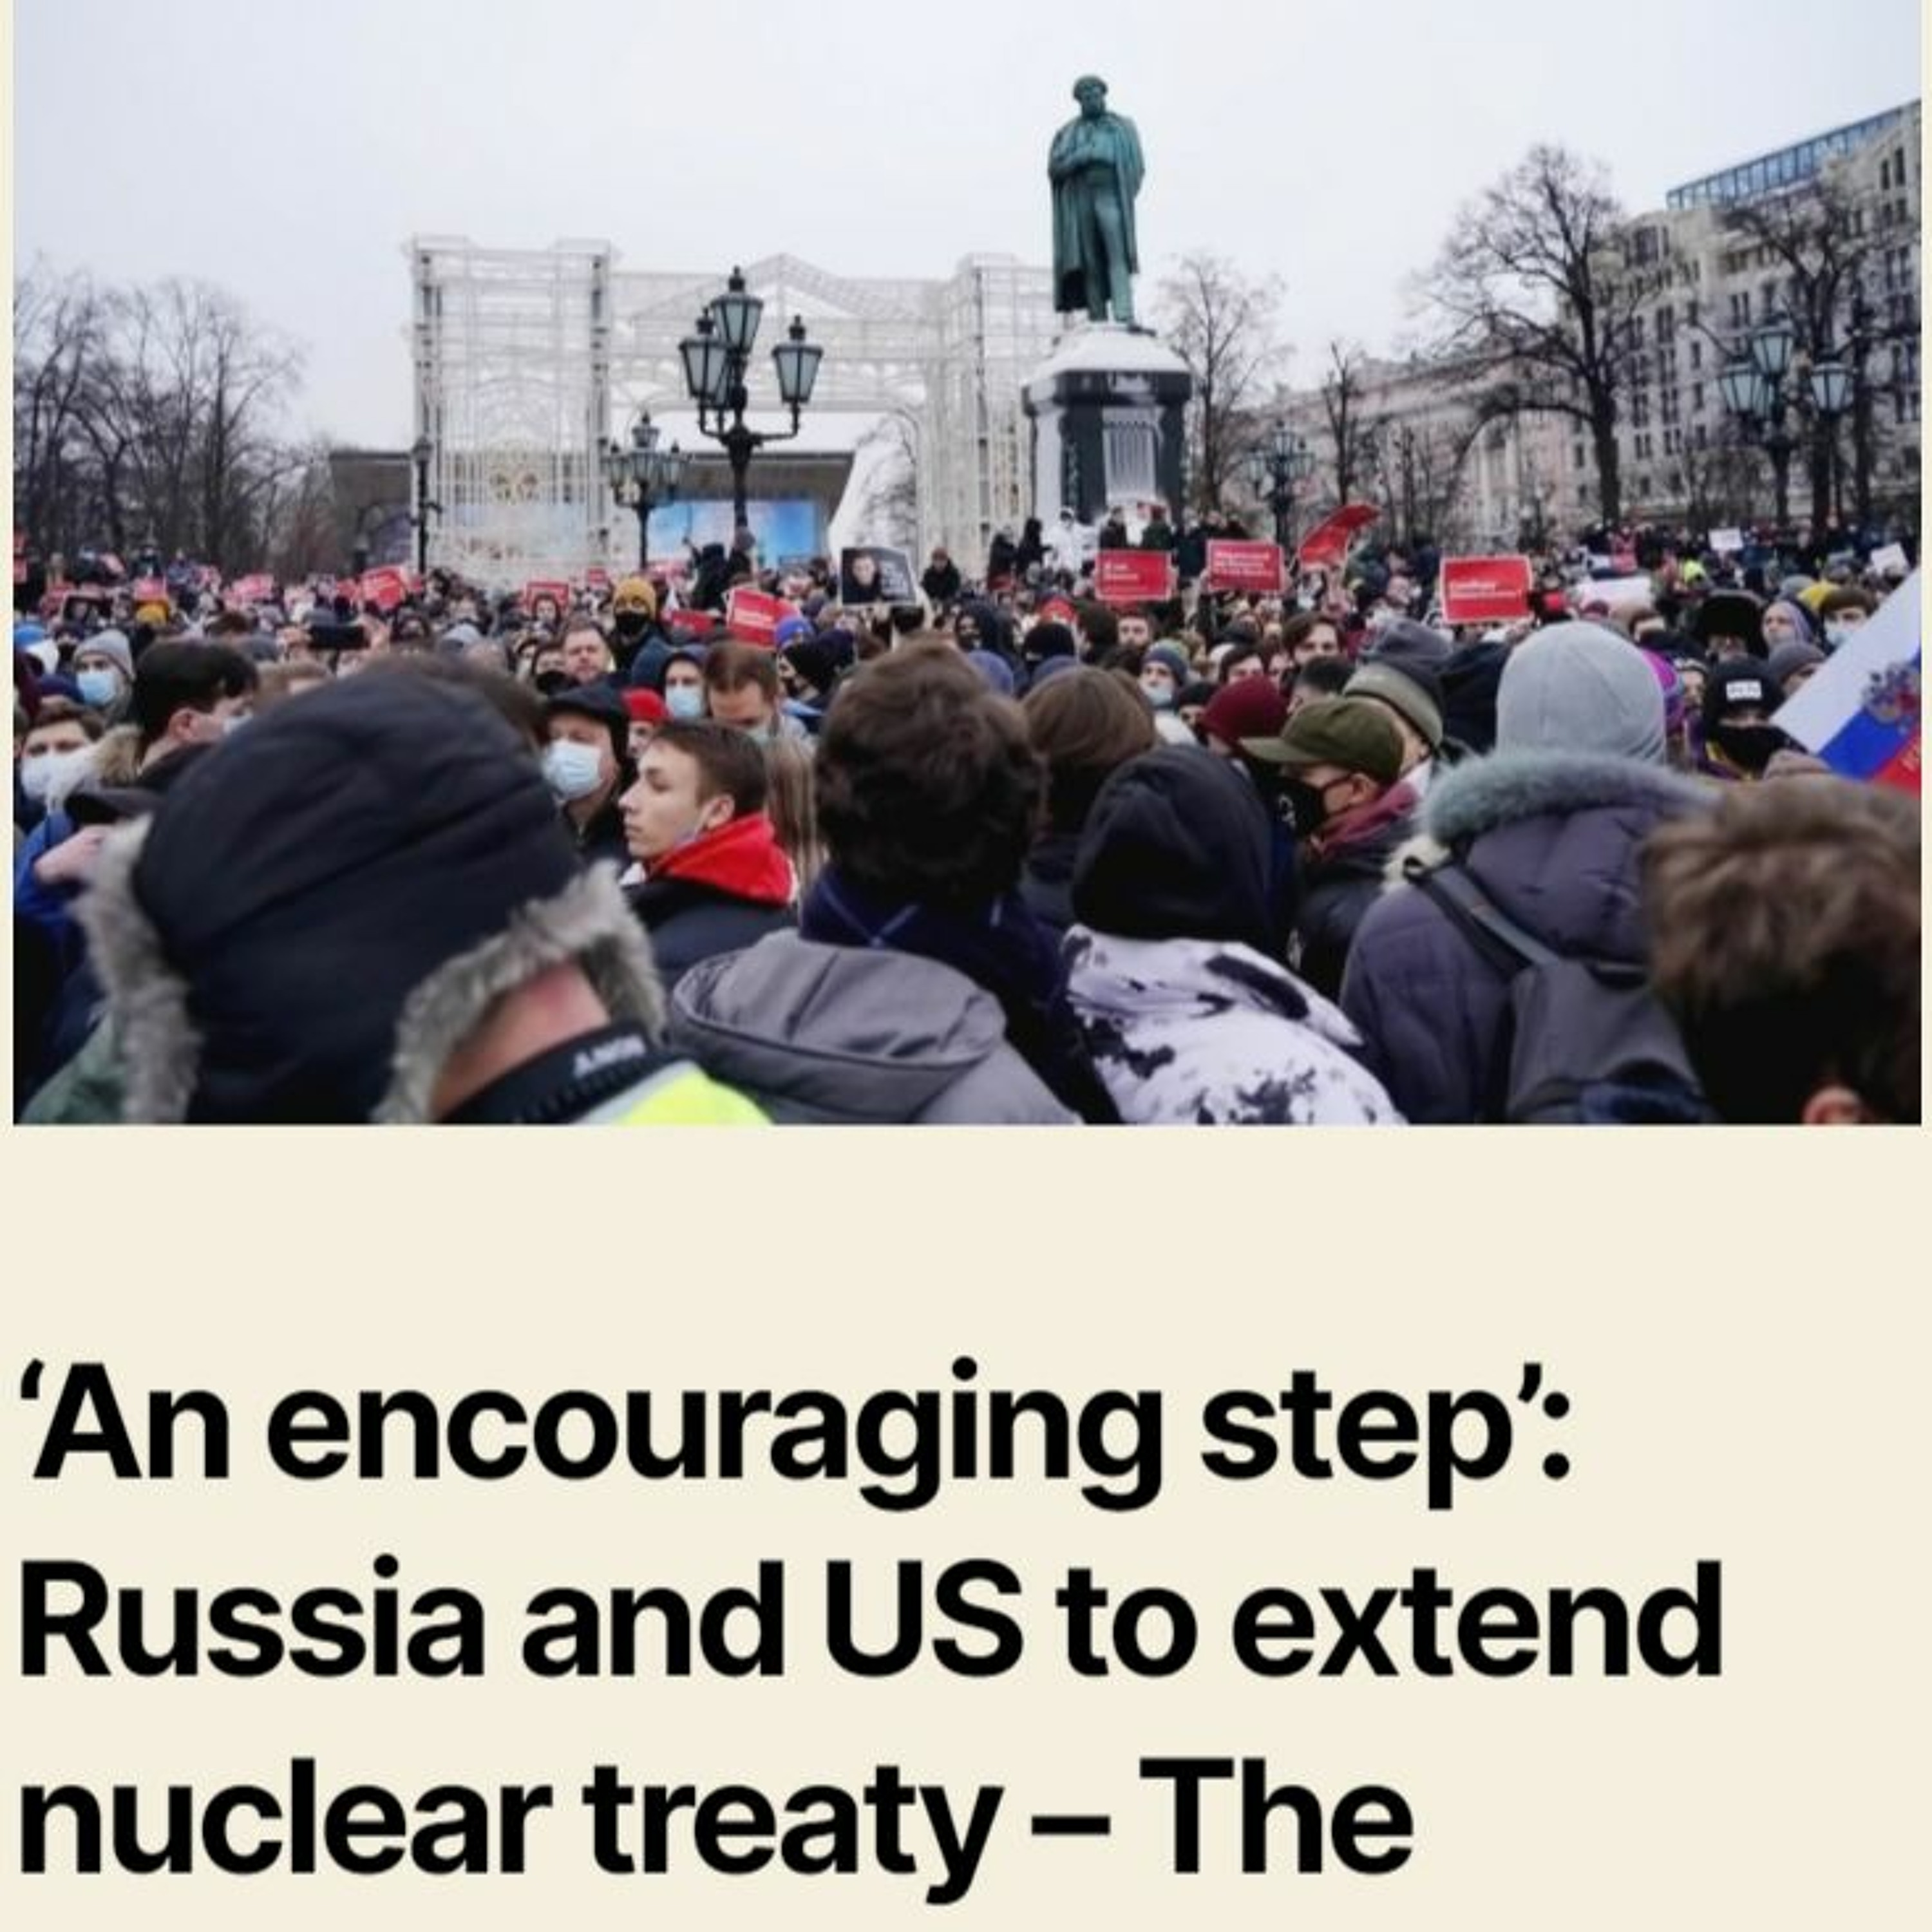 4:54 AM 1/24/2021 – 'An encouraging step': Russia and US to extend nuclear treaty